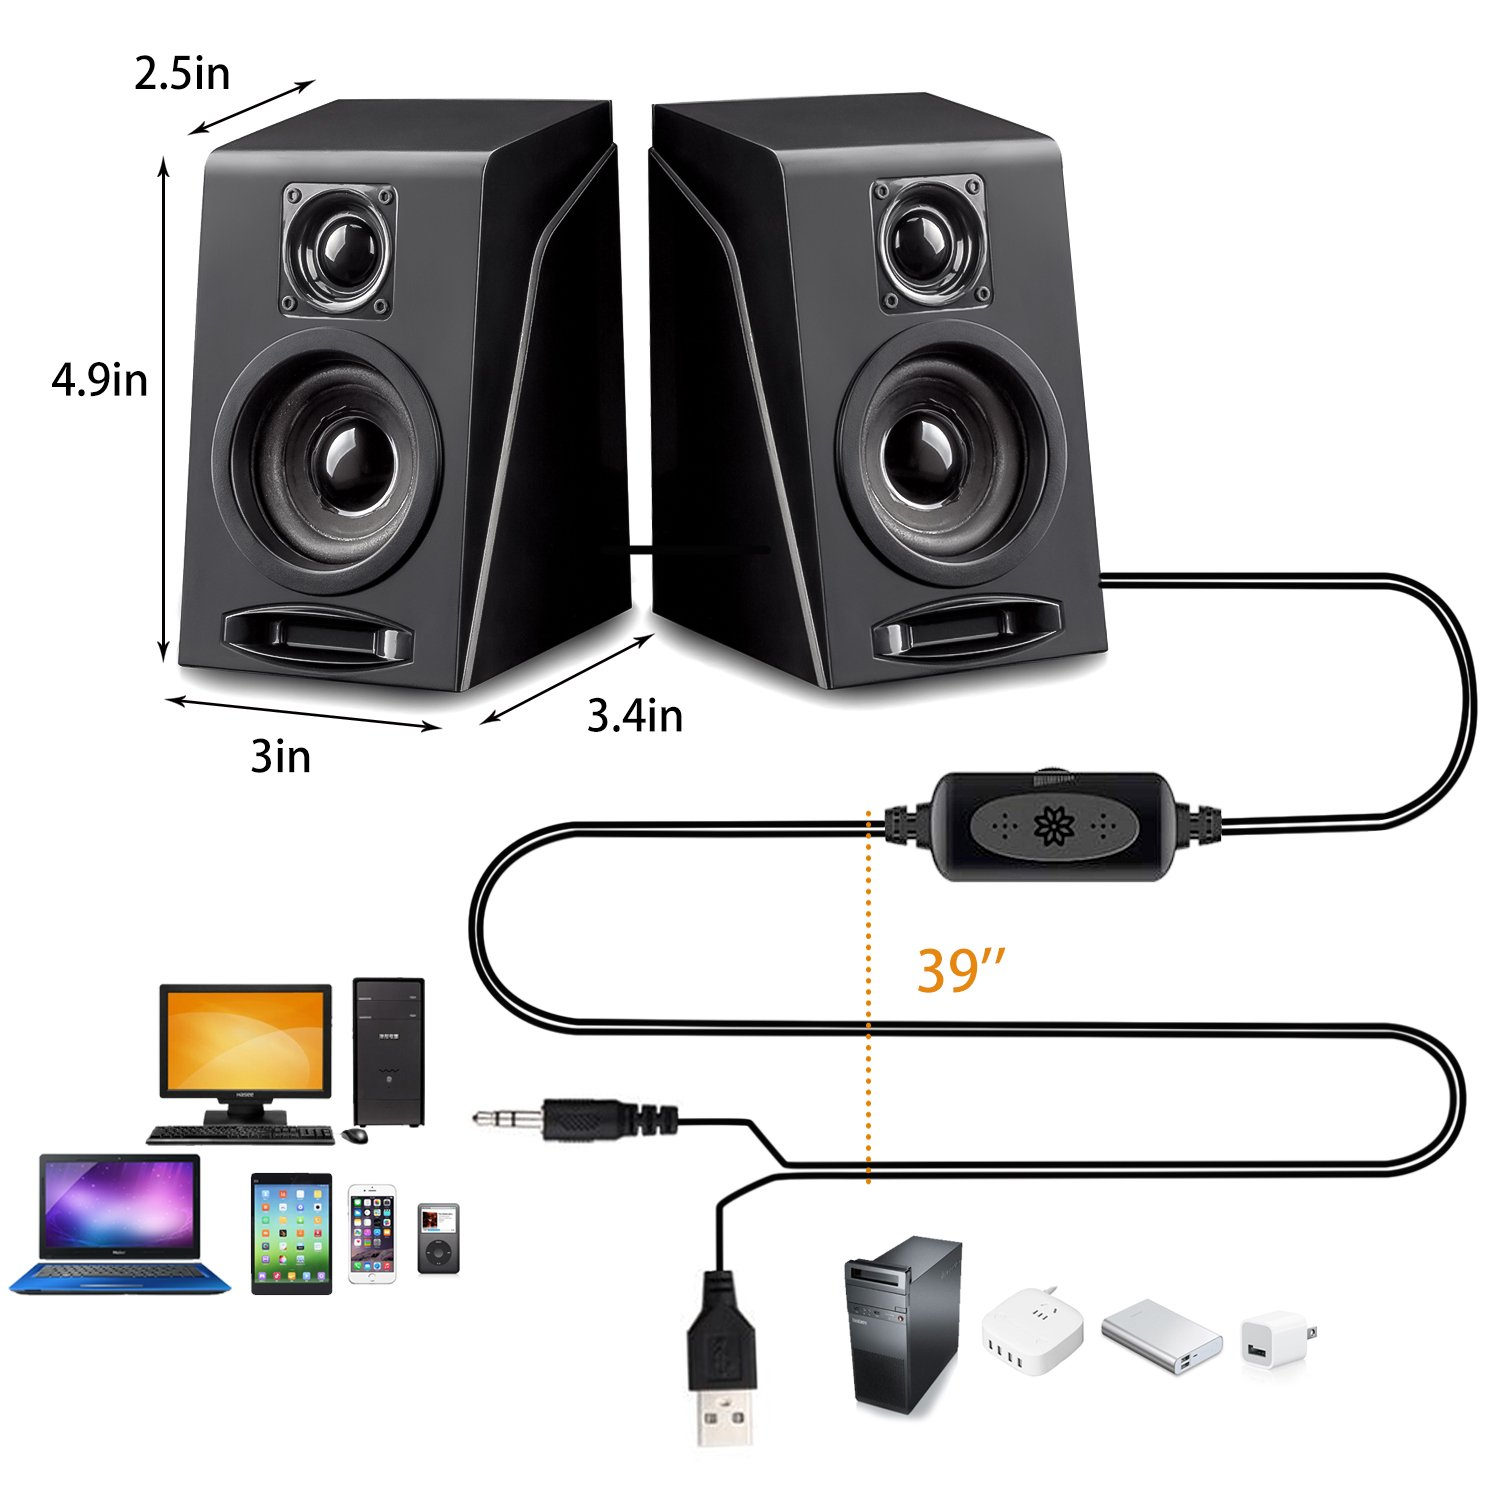 USB Powered Computer Speakers, Wired Stereo Desktop Bookshelf Laptop Speakers with Volume Control Ideal for Notebook, Laptop, PC, Desktop Tablet by Meetuo (Image #4)